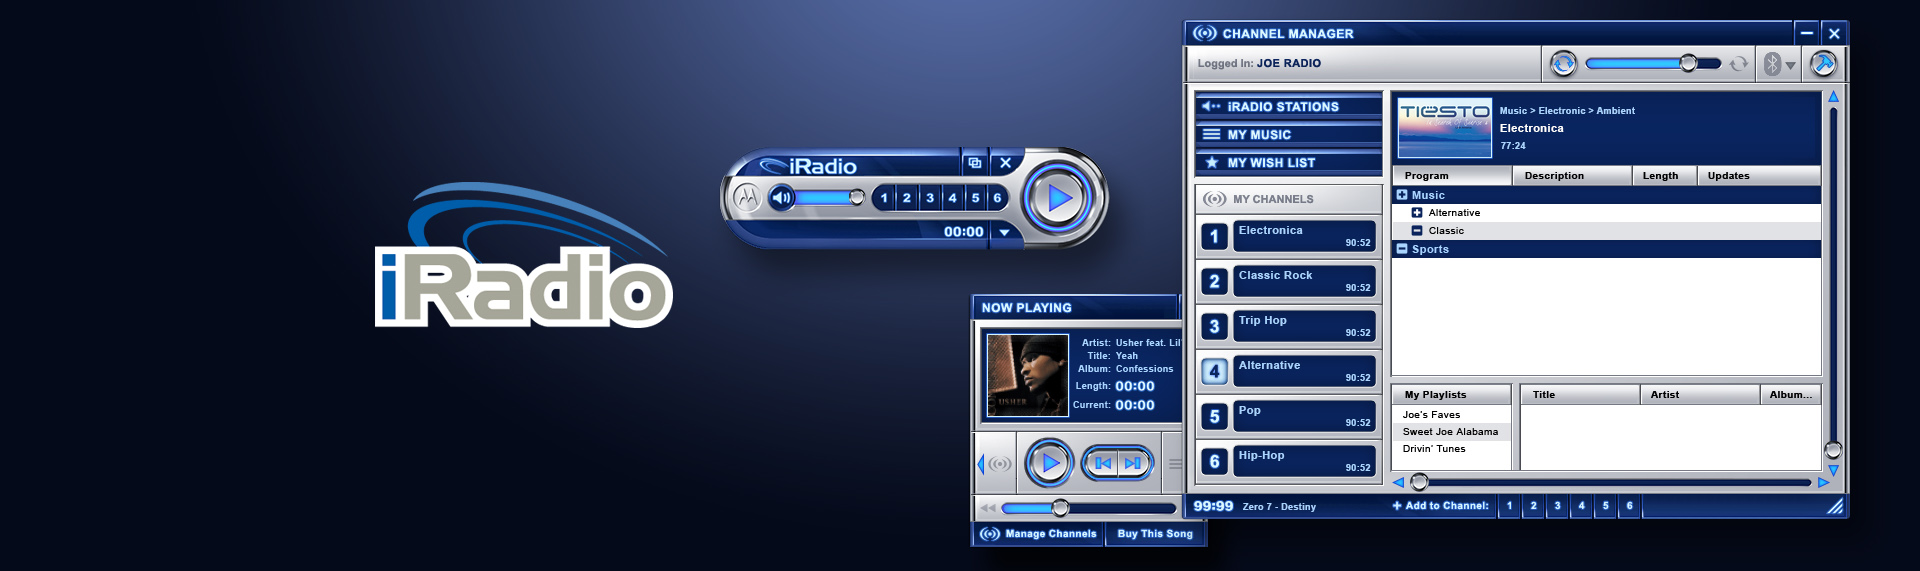 Motorola iRadio  Desktop Application UX & UI Design  Motorola, Inc. and The Skins Factory collaborated on the creation of the beta user interface for their iRadio music application. The Skins Factory's design squad created a tactile environment using deep cobalt blues and shiny alloys that deliver a rich, real-world feeling to the end-user. We started with detailed wireframes before diving into the actual visual design mocks. The player was then modeled in 3D to support the animation sequences we had planned for the player.